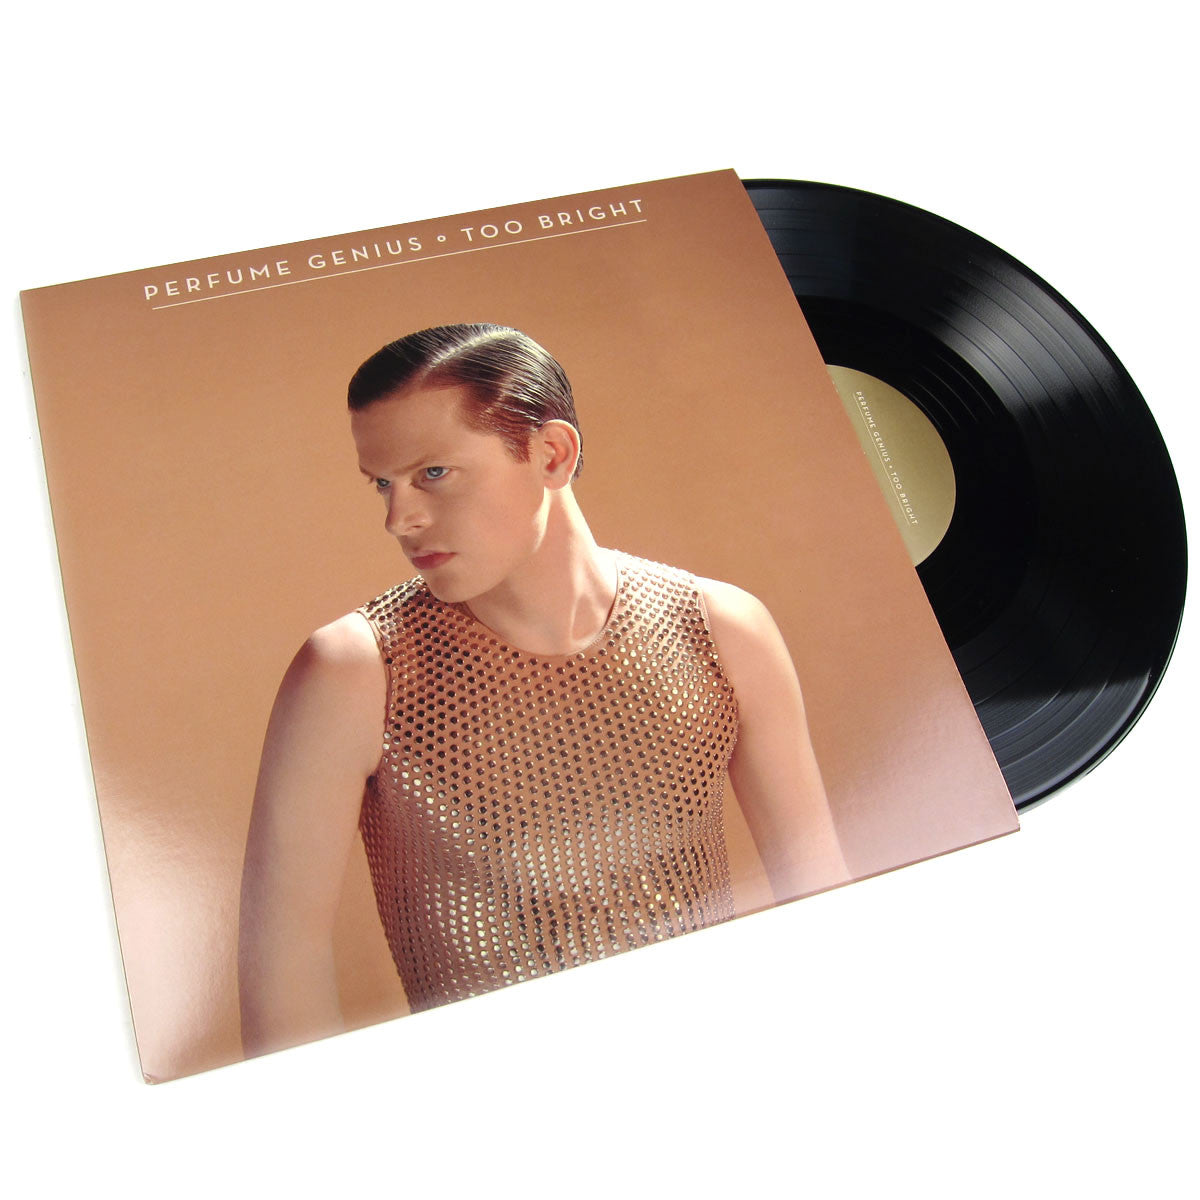 Perfume Genius: Too Bright (Free MP3) Vinyl LP